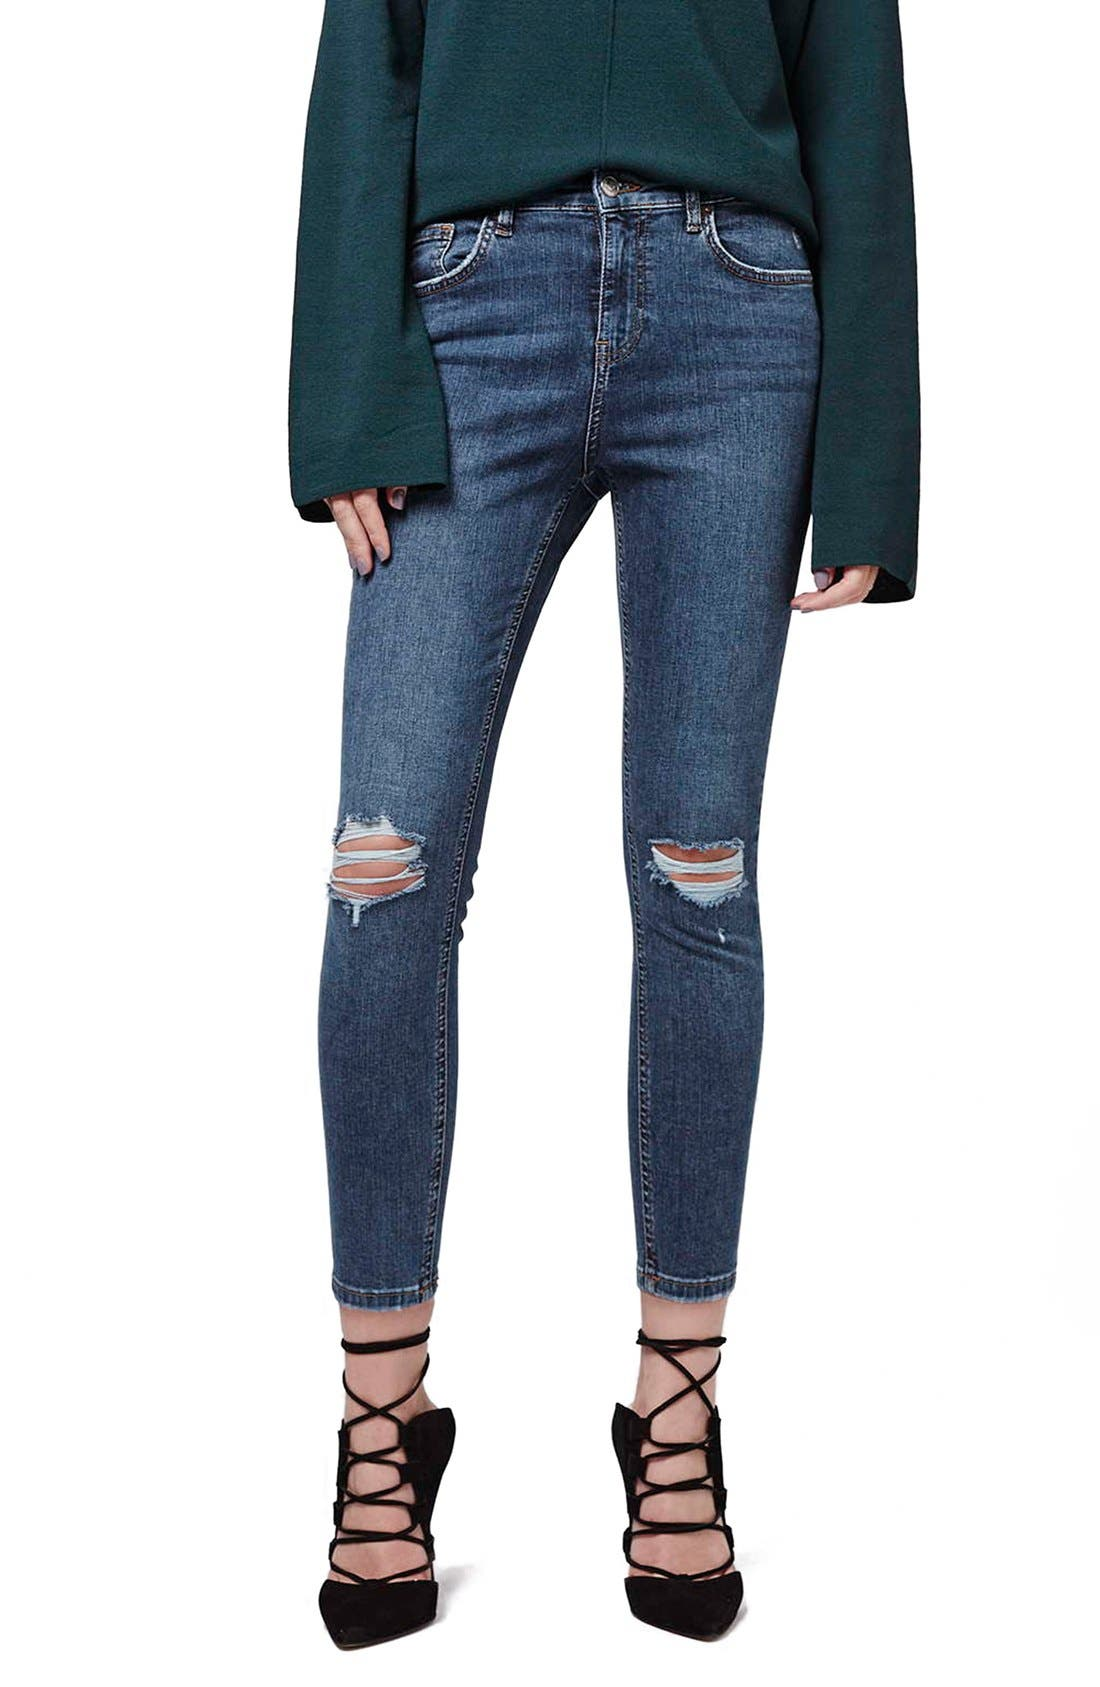 Main Image - Topshop Moto 'Jamie' Ripped Skinny Ankle Jeans (Petite)